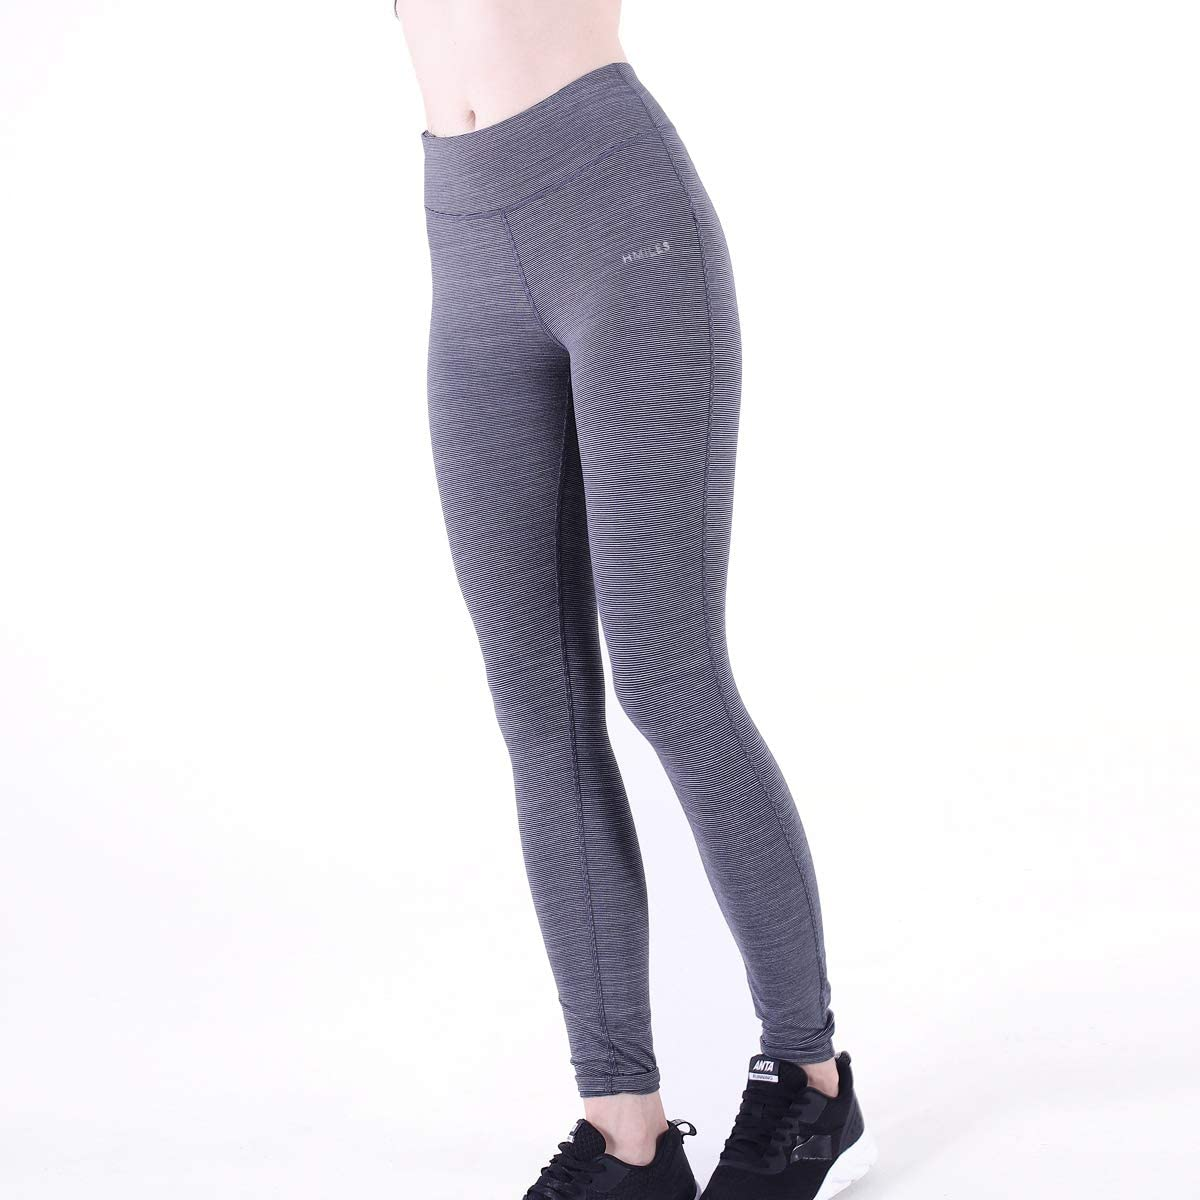 HMILES Compression Active Leggings Workout Women Gym Running Athletic Tights Yoga Pants